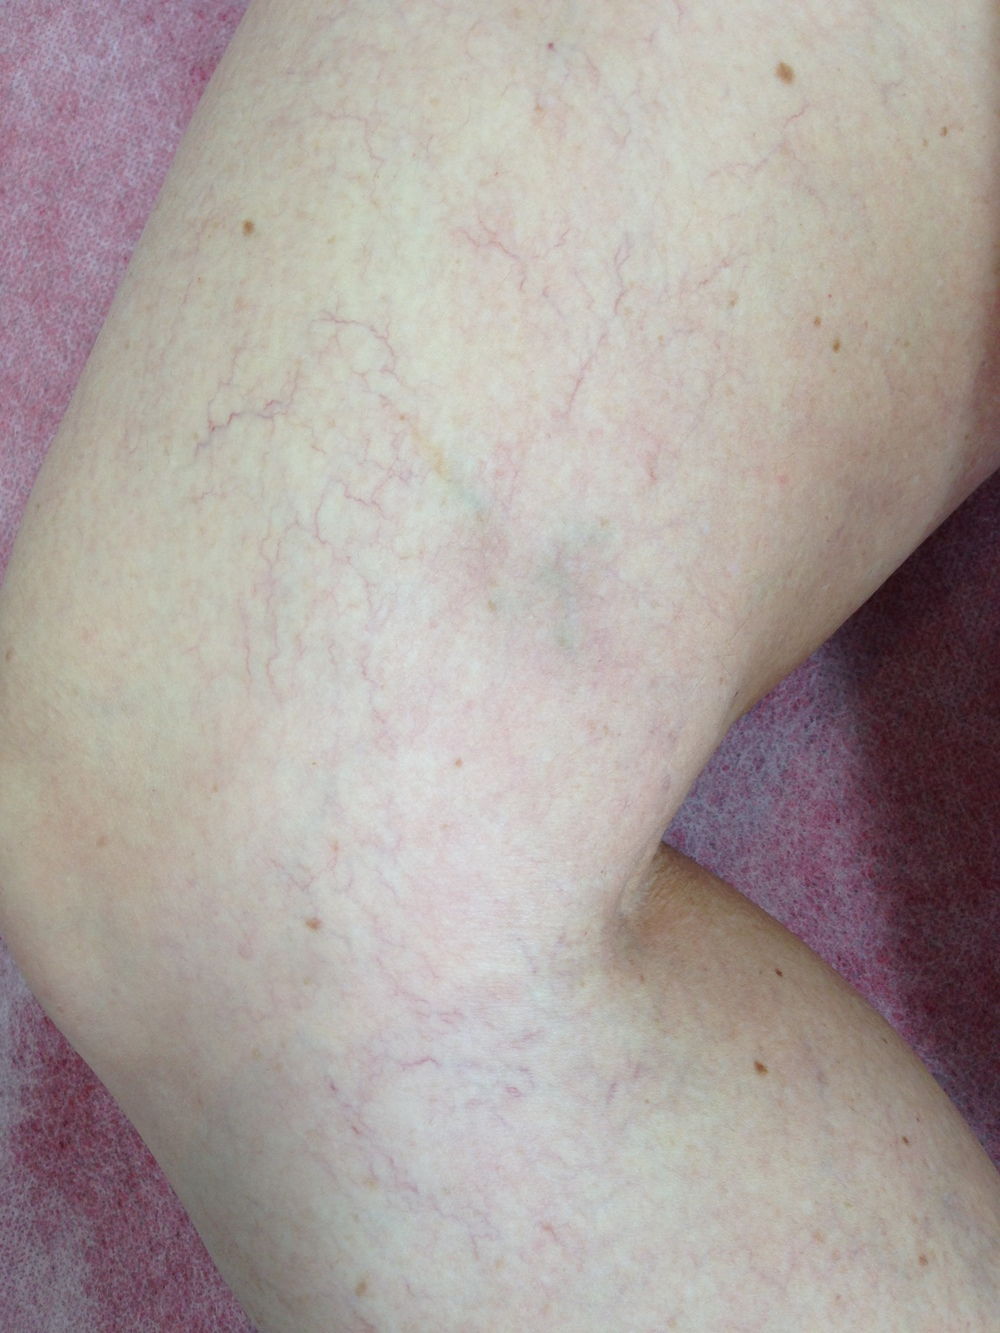 Treatment: Bilateral Sclerotherapy. Results at 3 months, following treatment 3 of 4.